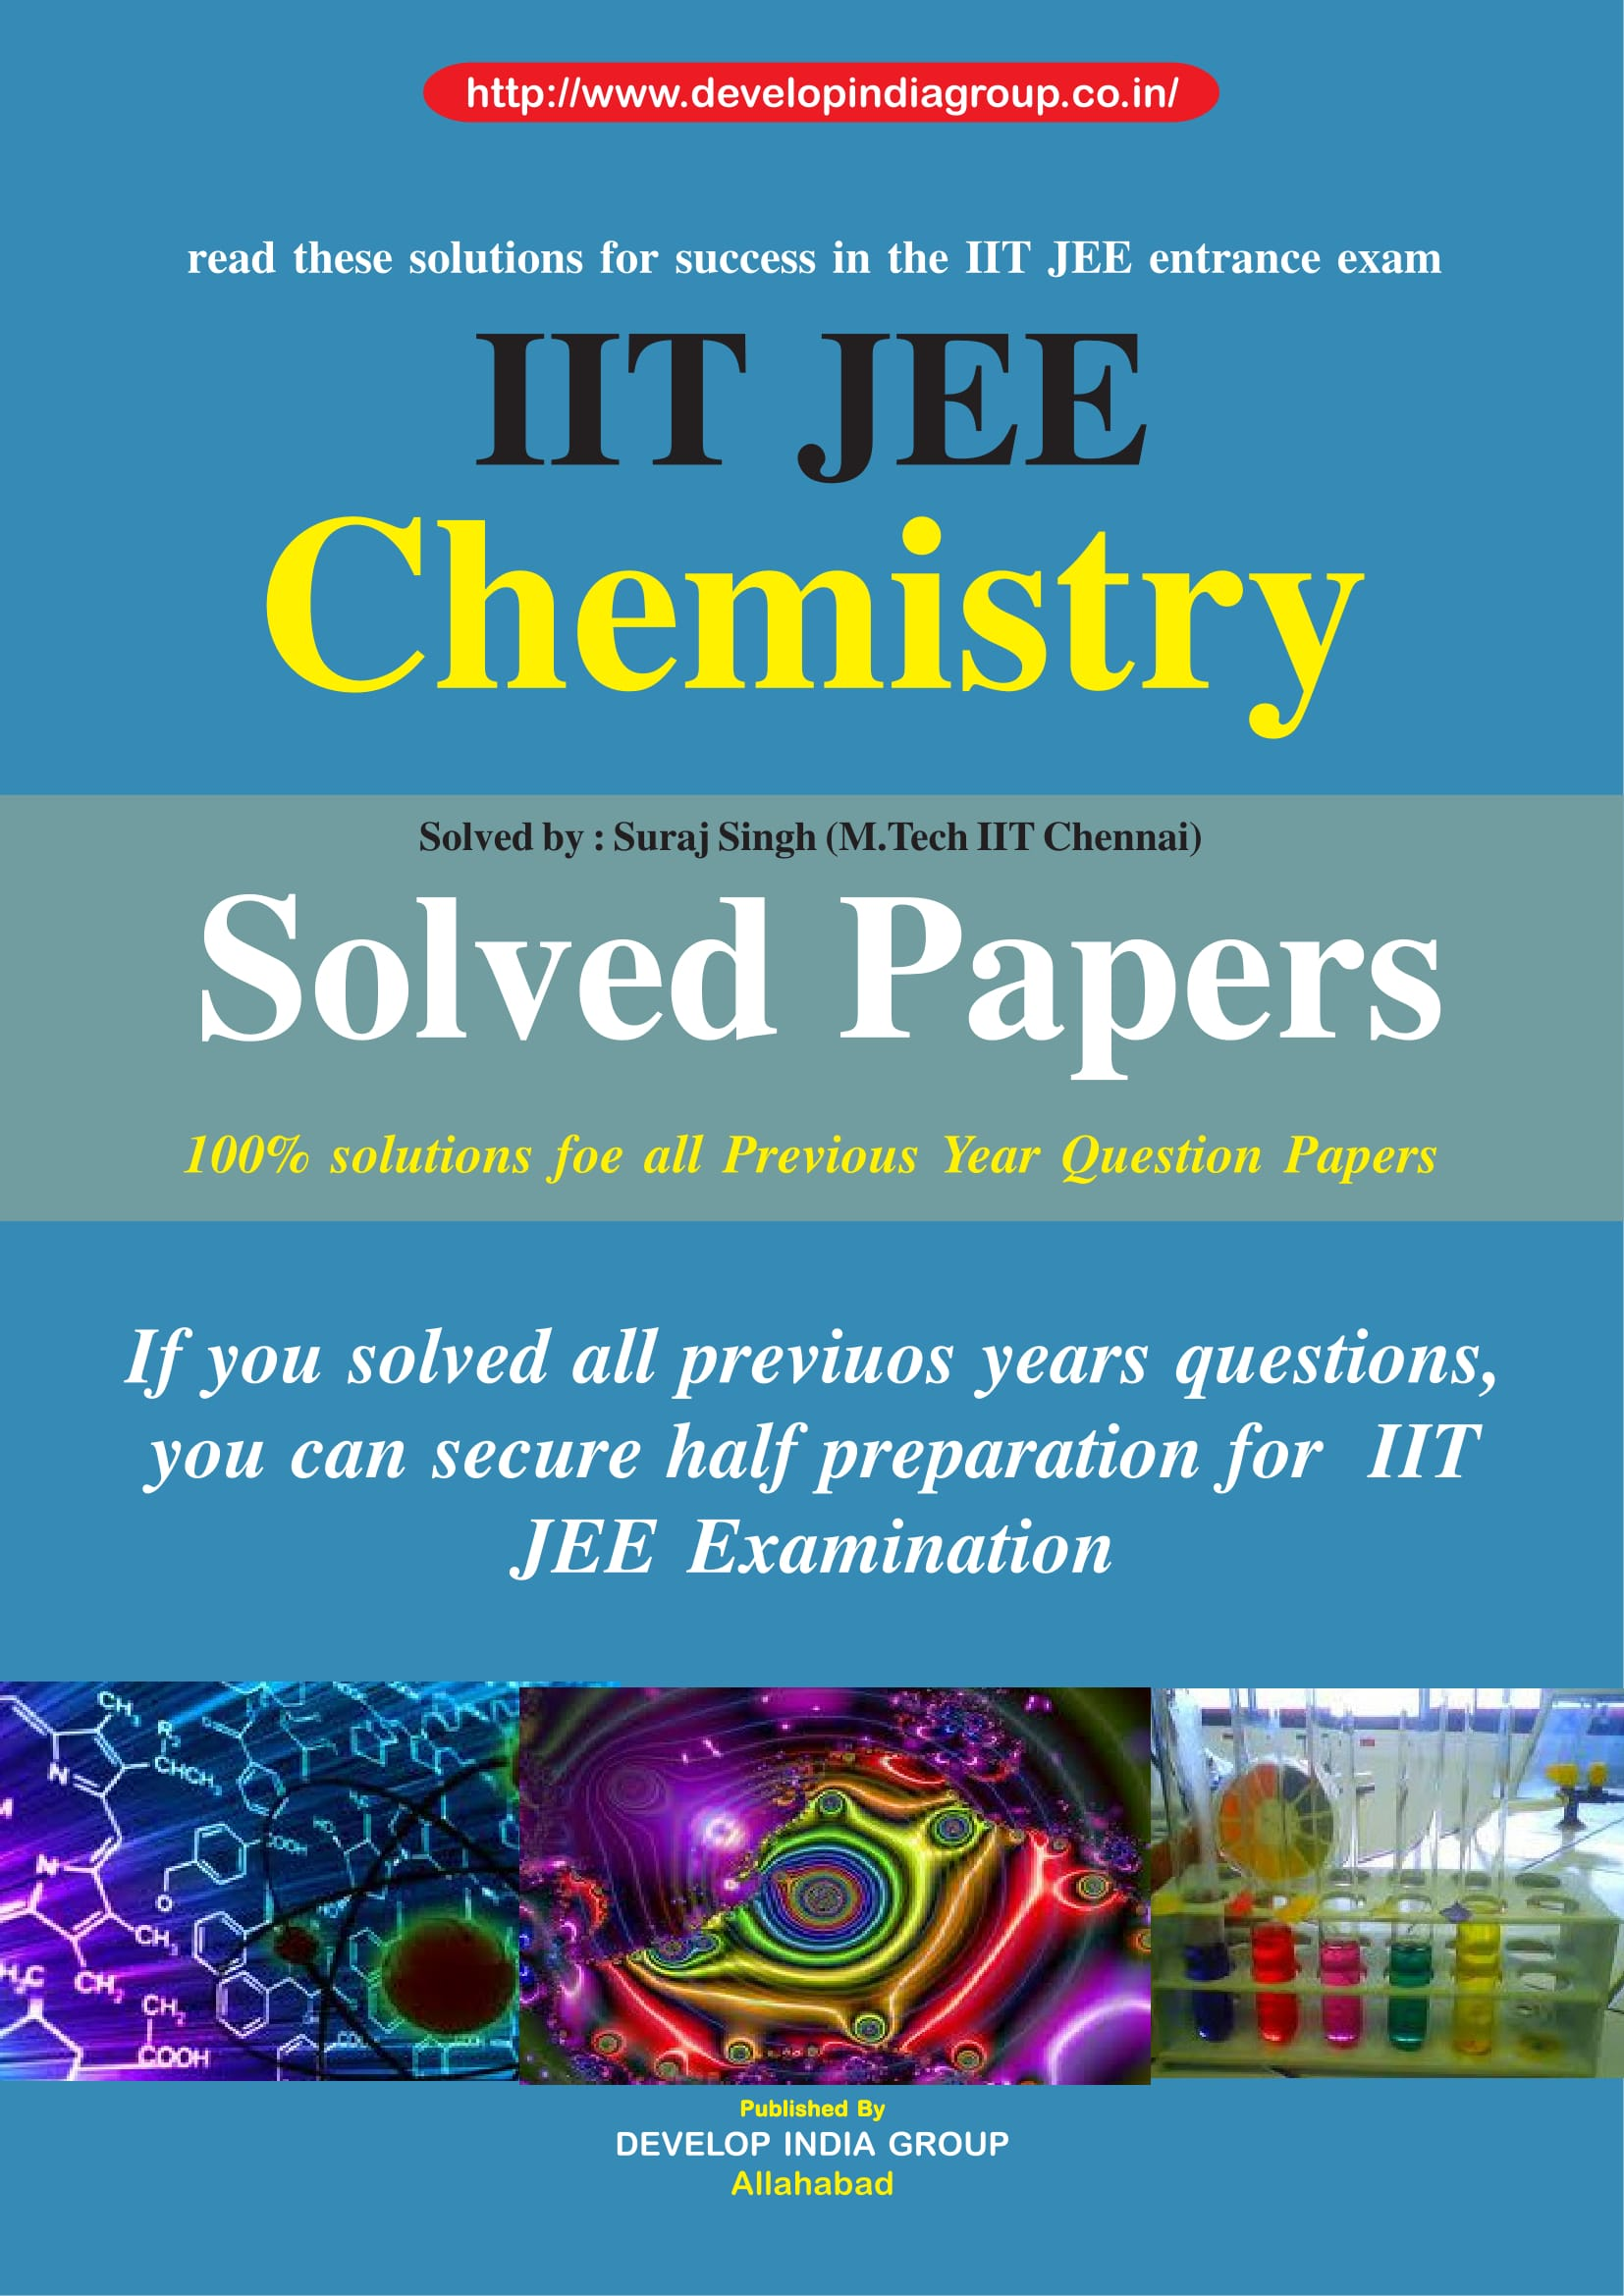 IIT_JEE_solved_paper_for_Chemistry